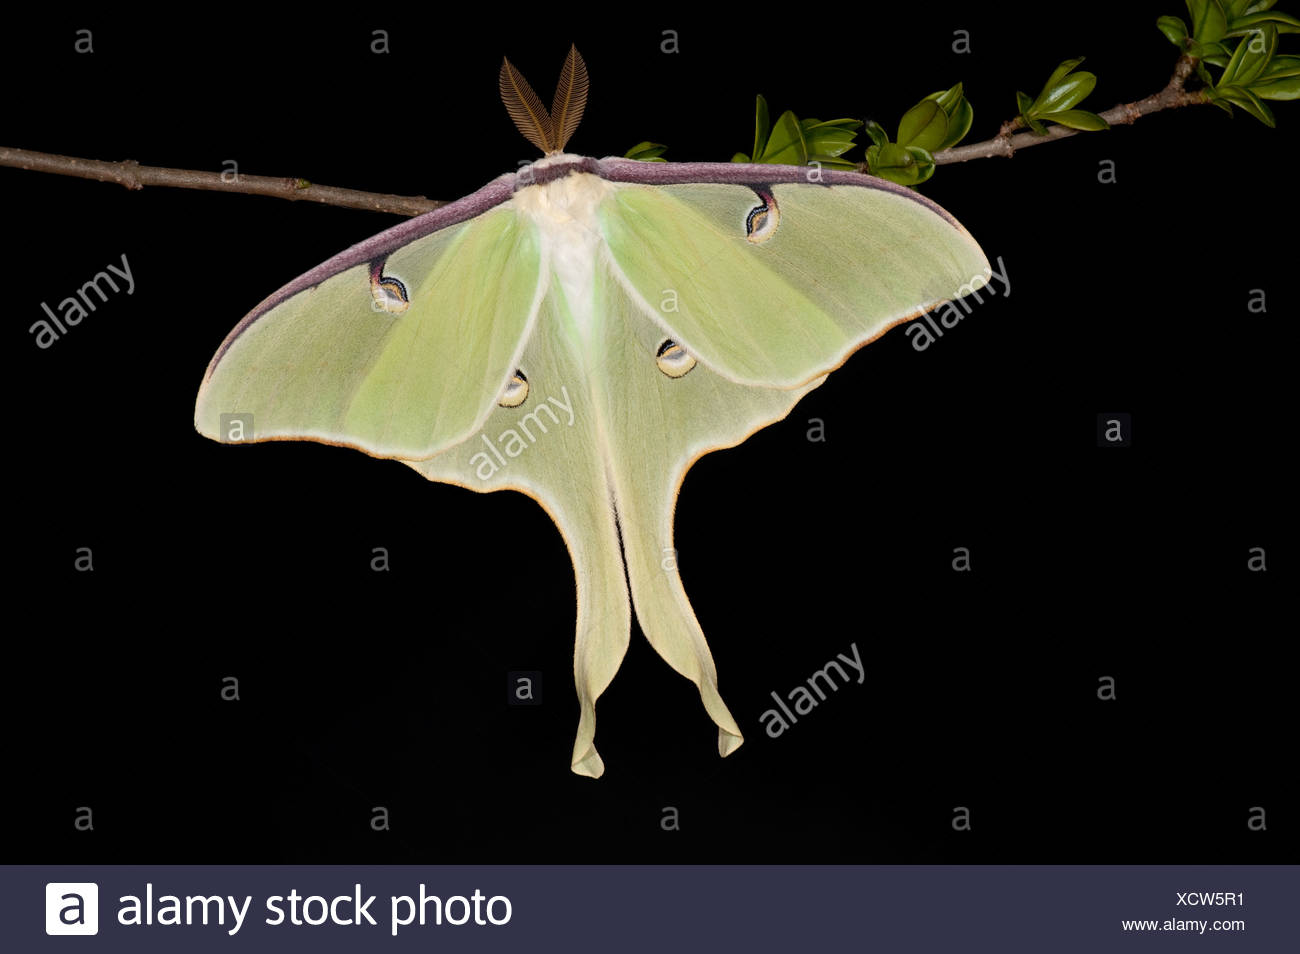 American Moon Moth  Actias luna USA on shrub branch - Stock Image